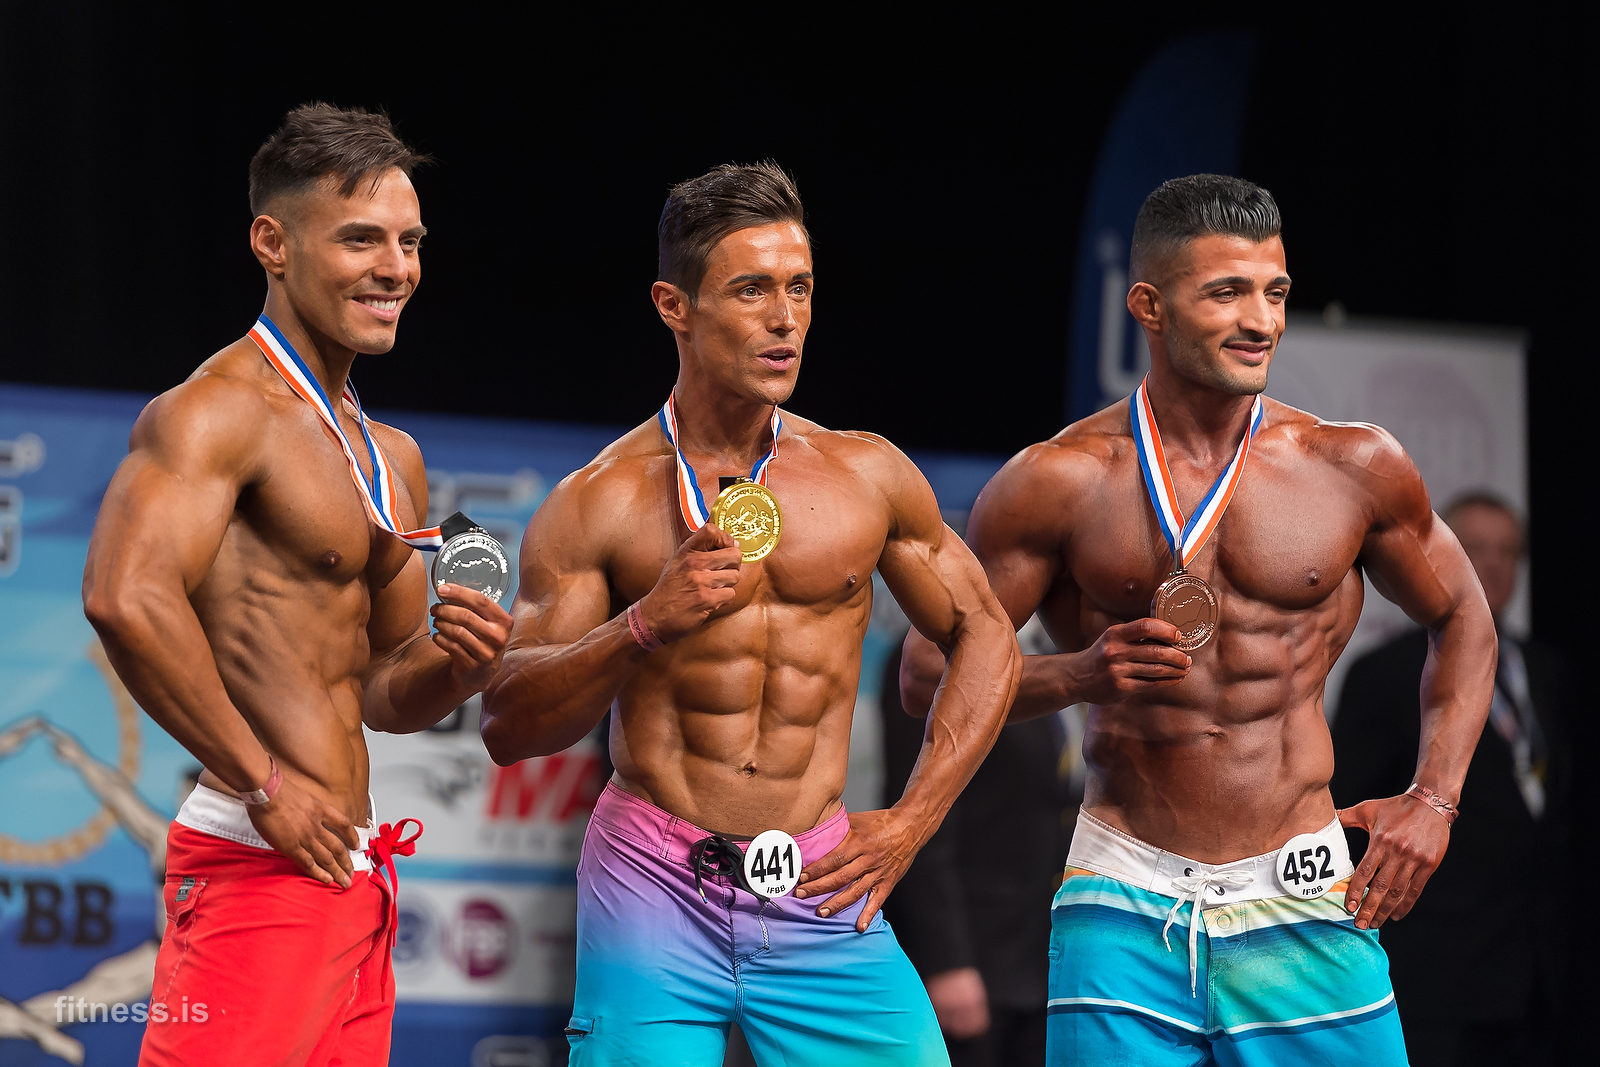 Sportfitness (Men´s physique) á HM í Búdapest 2015.